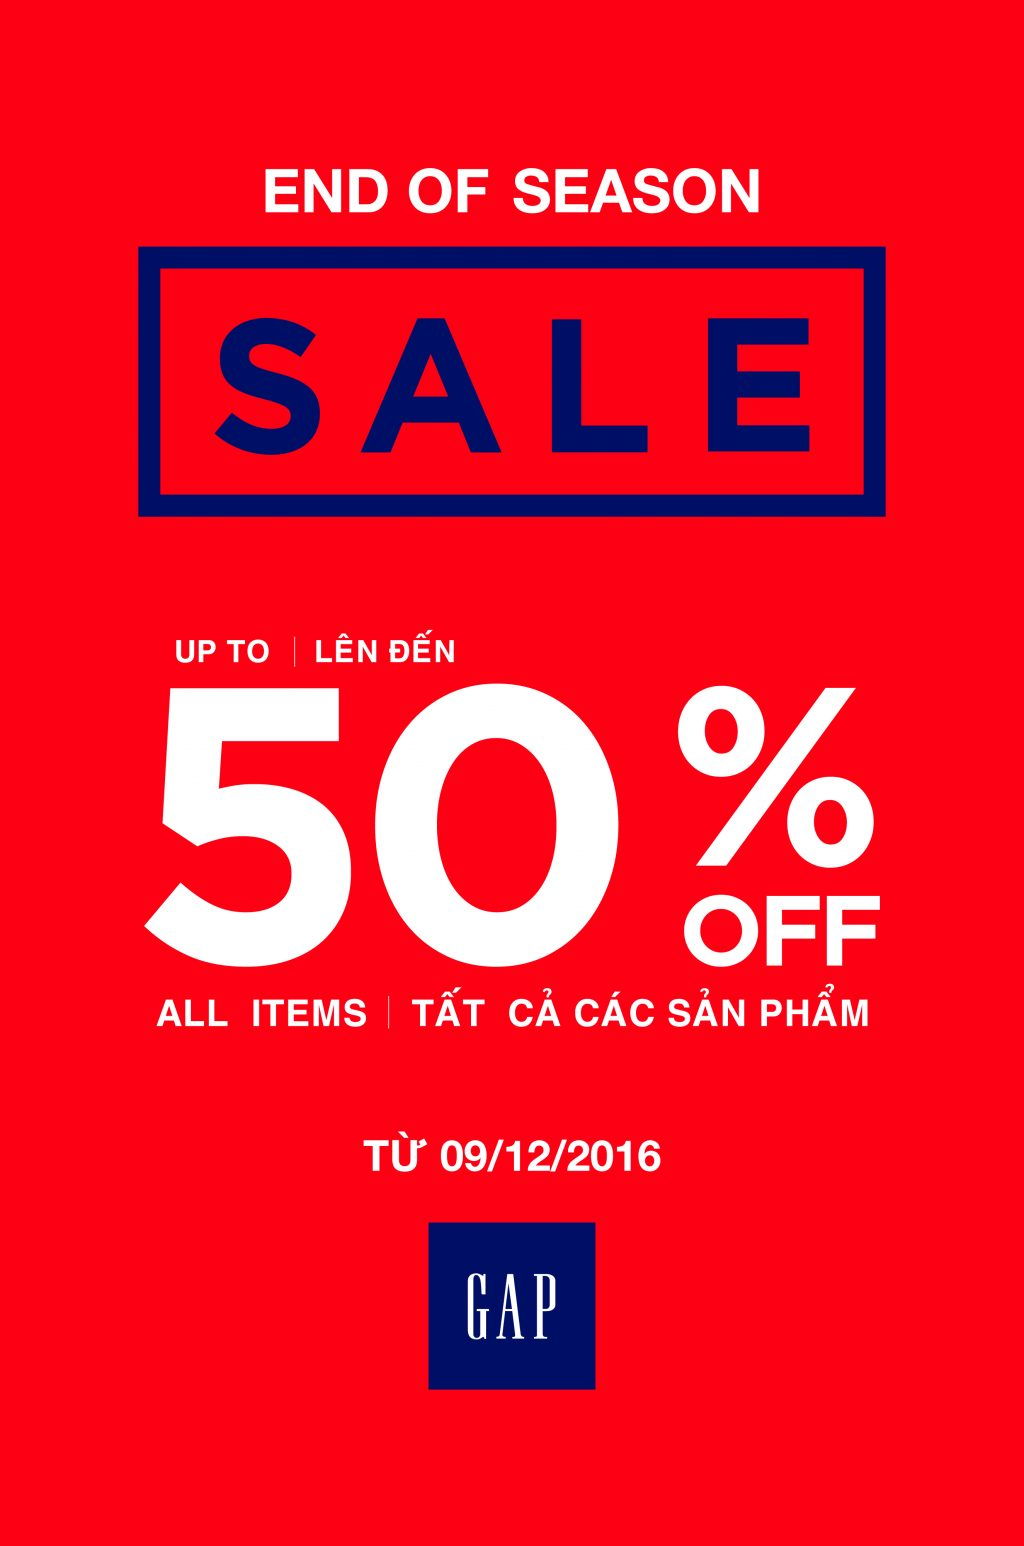 GAP - End Of Season Sale